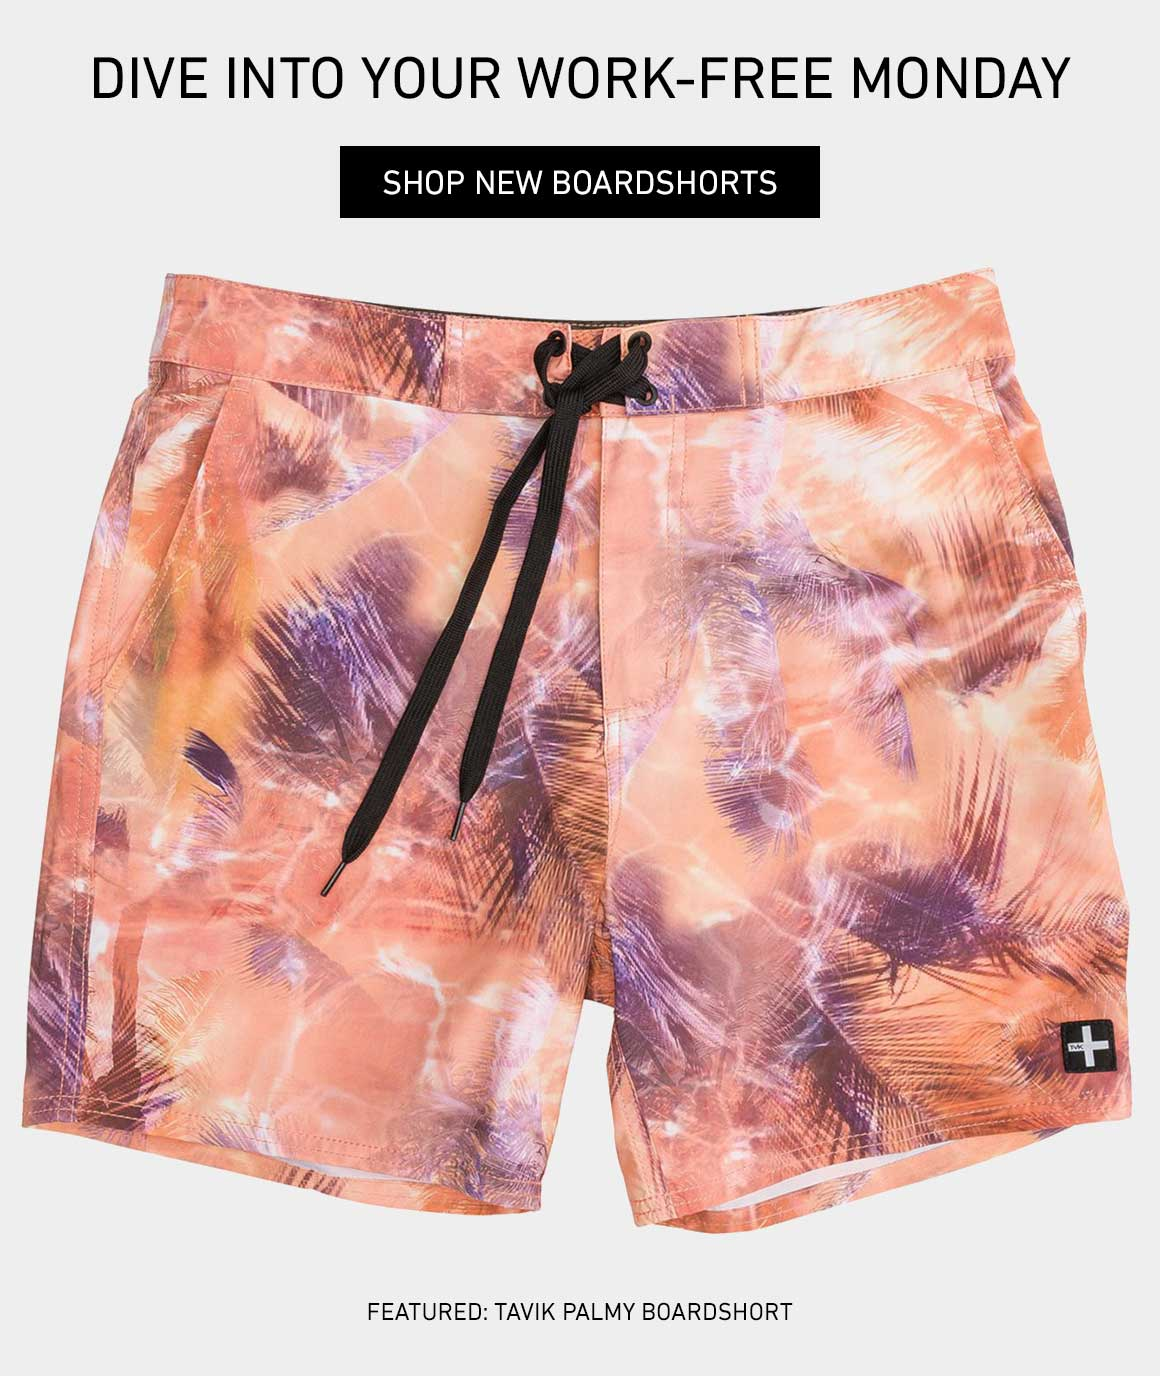 Dive Into Your Work Free Monday: Shop New Boardshorts